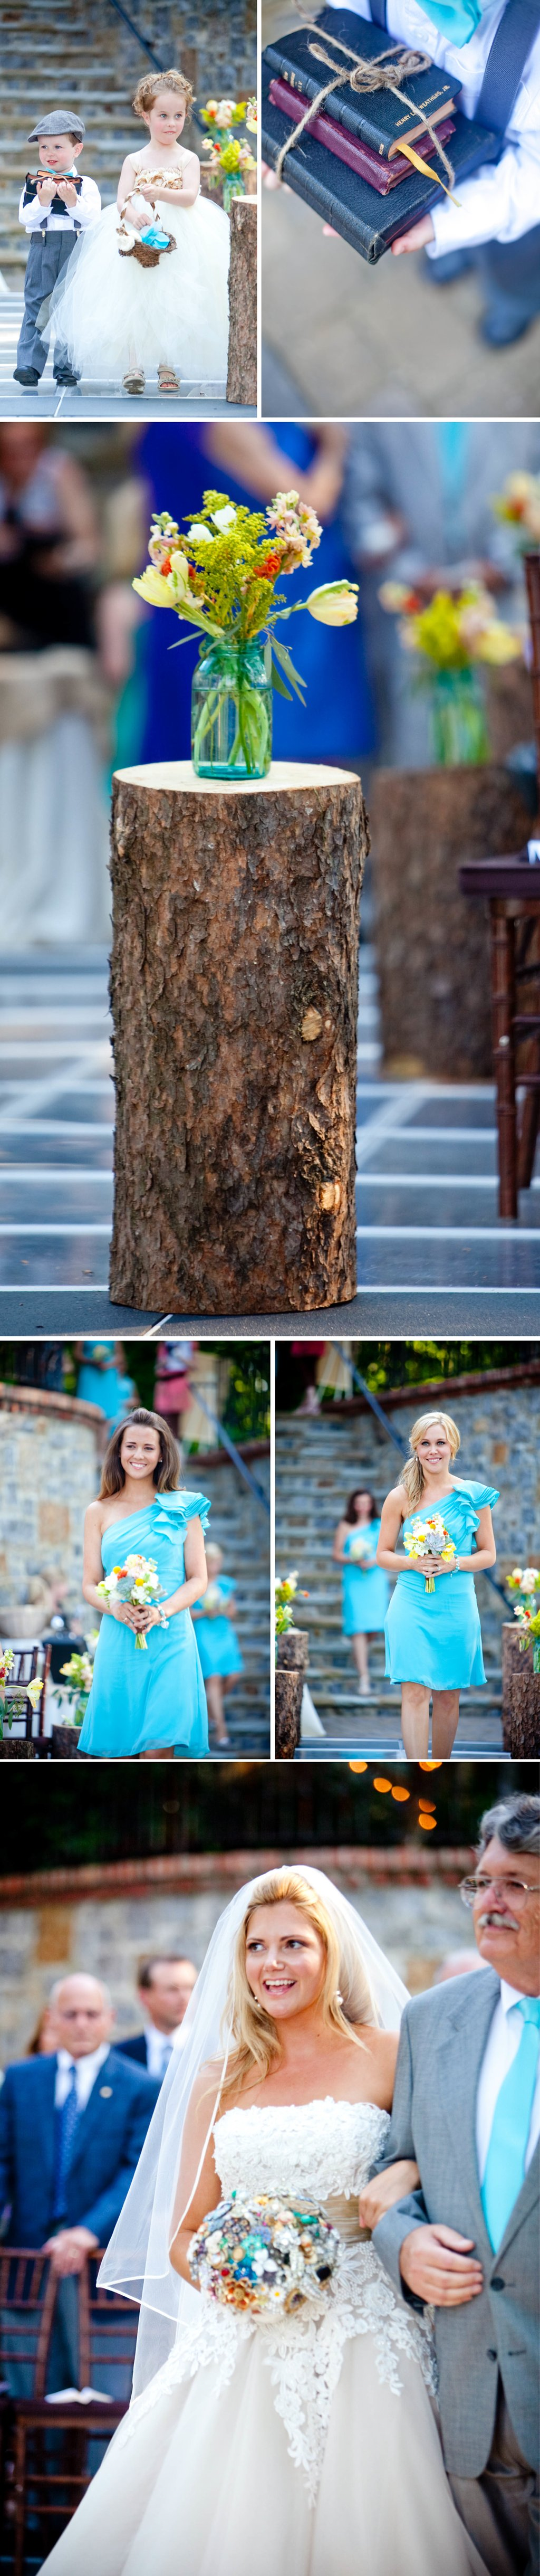 Turquoise-outdoor-wedding-vintage-inspired-bride-ceremony.full